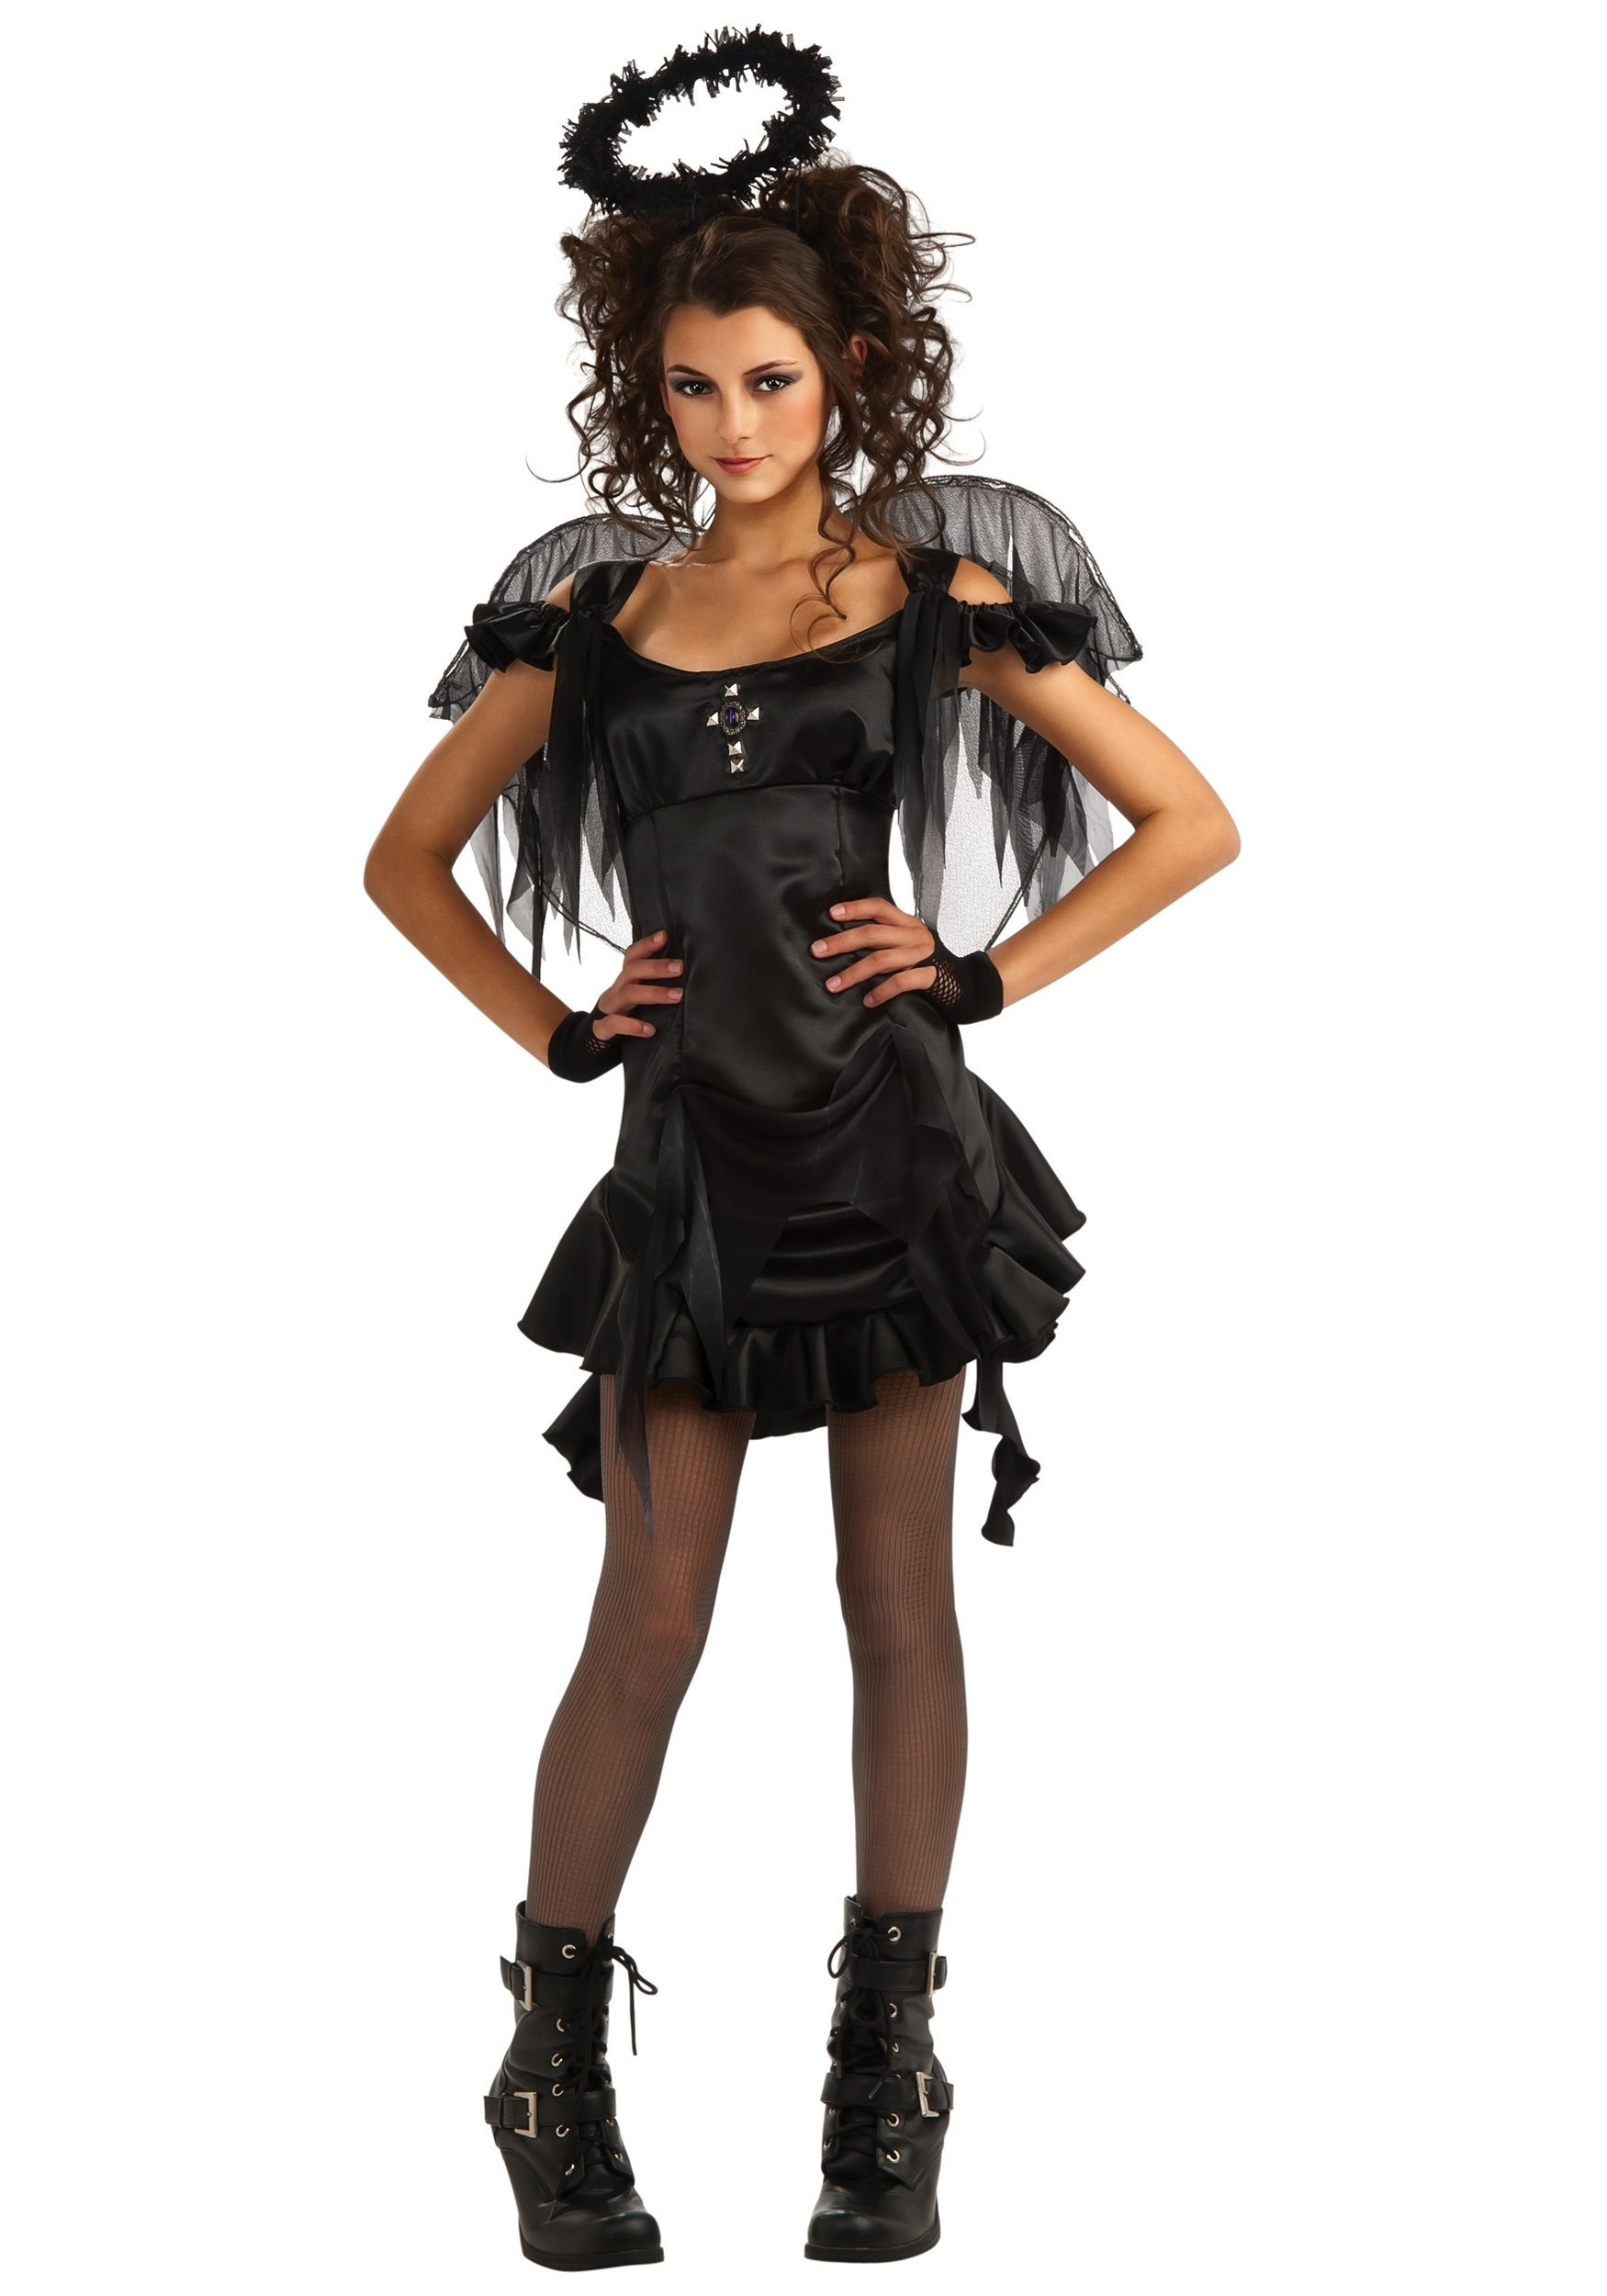 Teen Gothic Angel Costume   Costumes and Halloween costumes